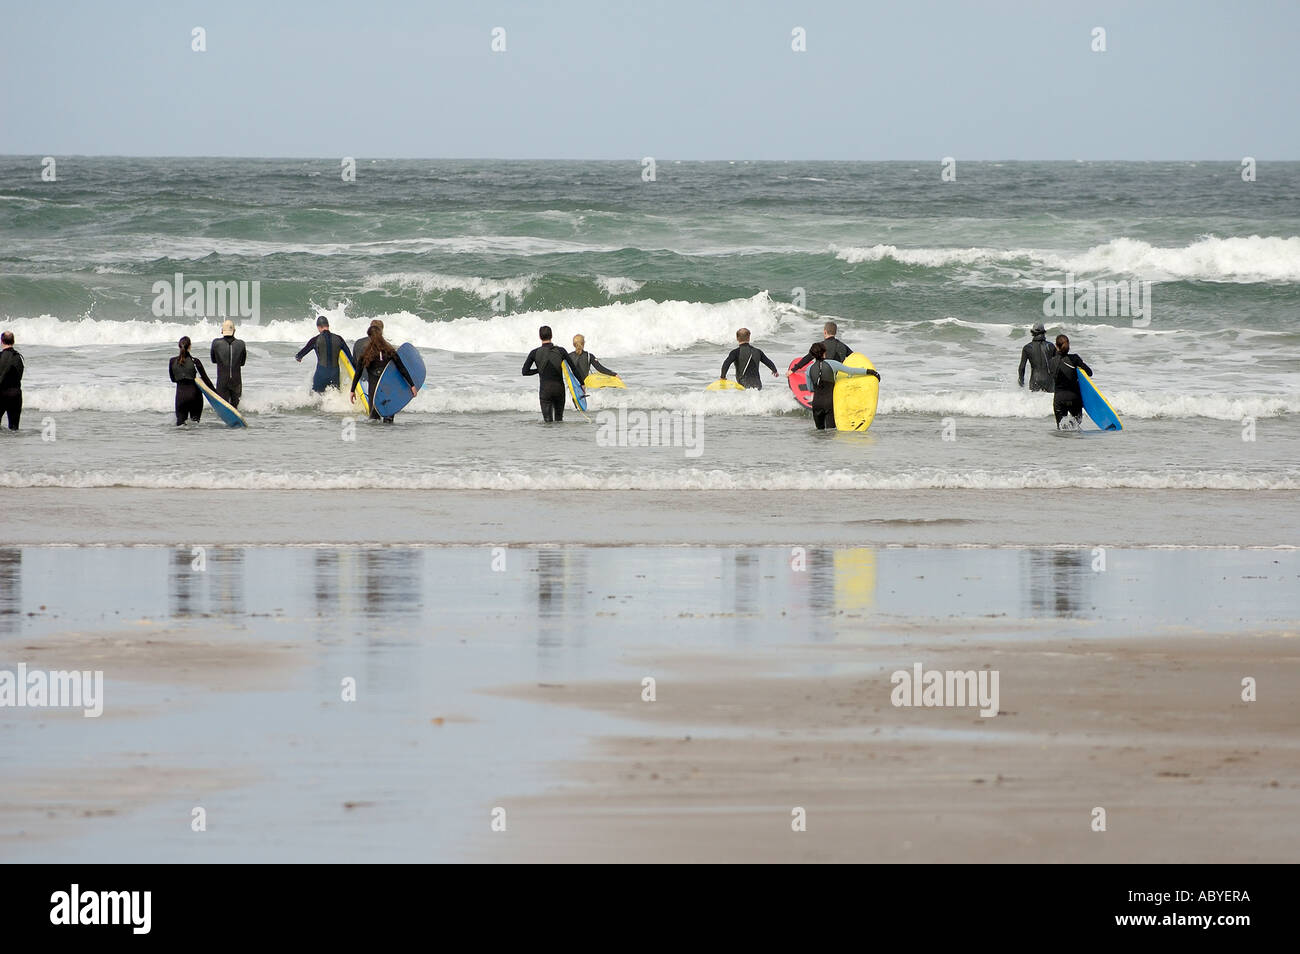 Surfing School at Sligo Ireland - Stock Image